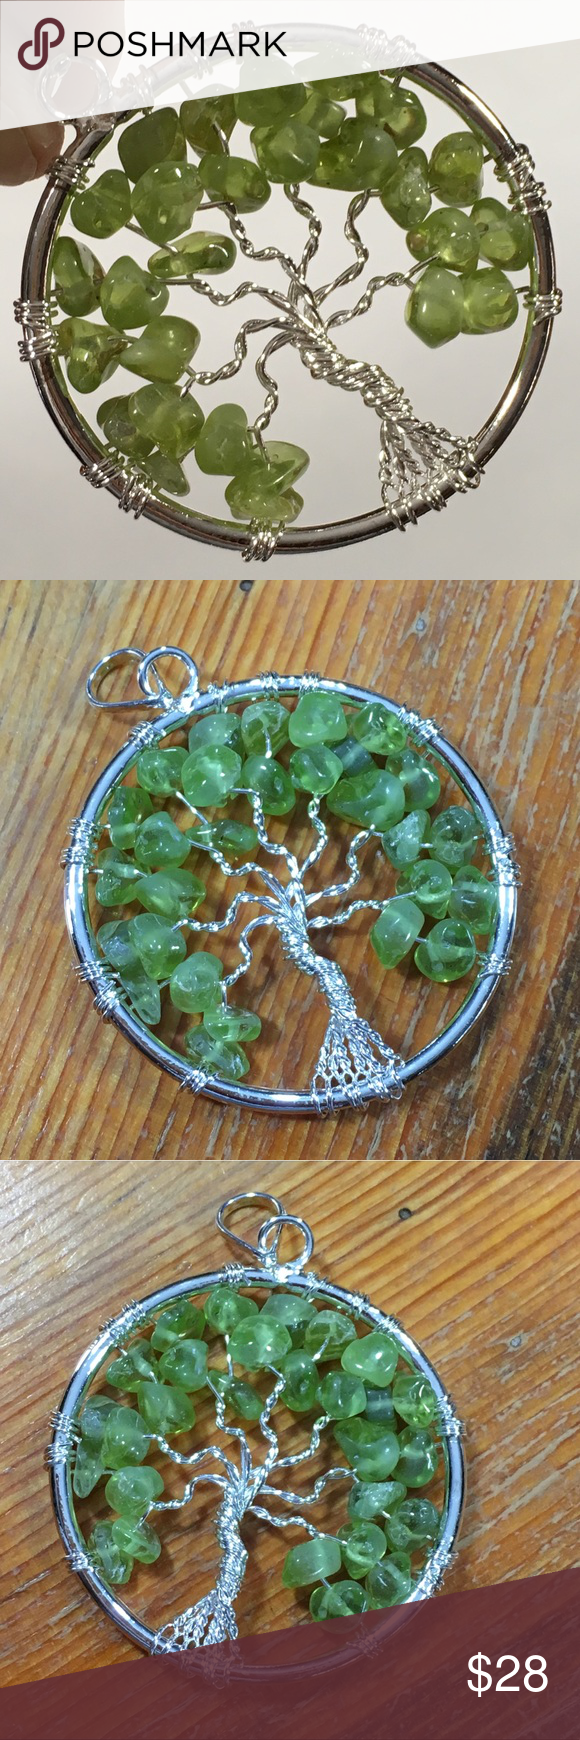 Peridot Tree of Life Pendant | Peridot, Green colors and Cable